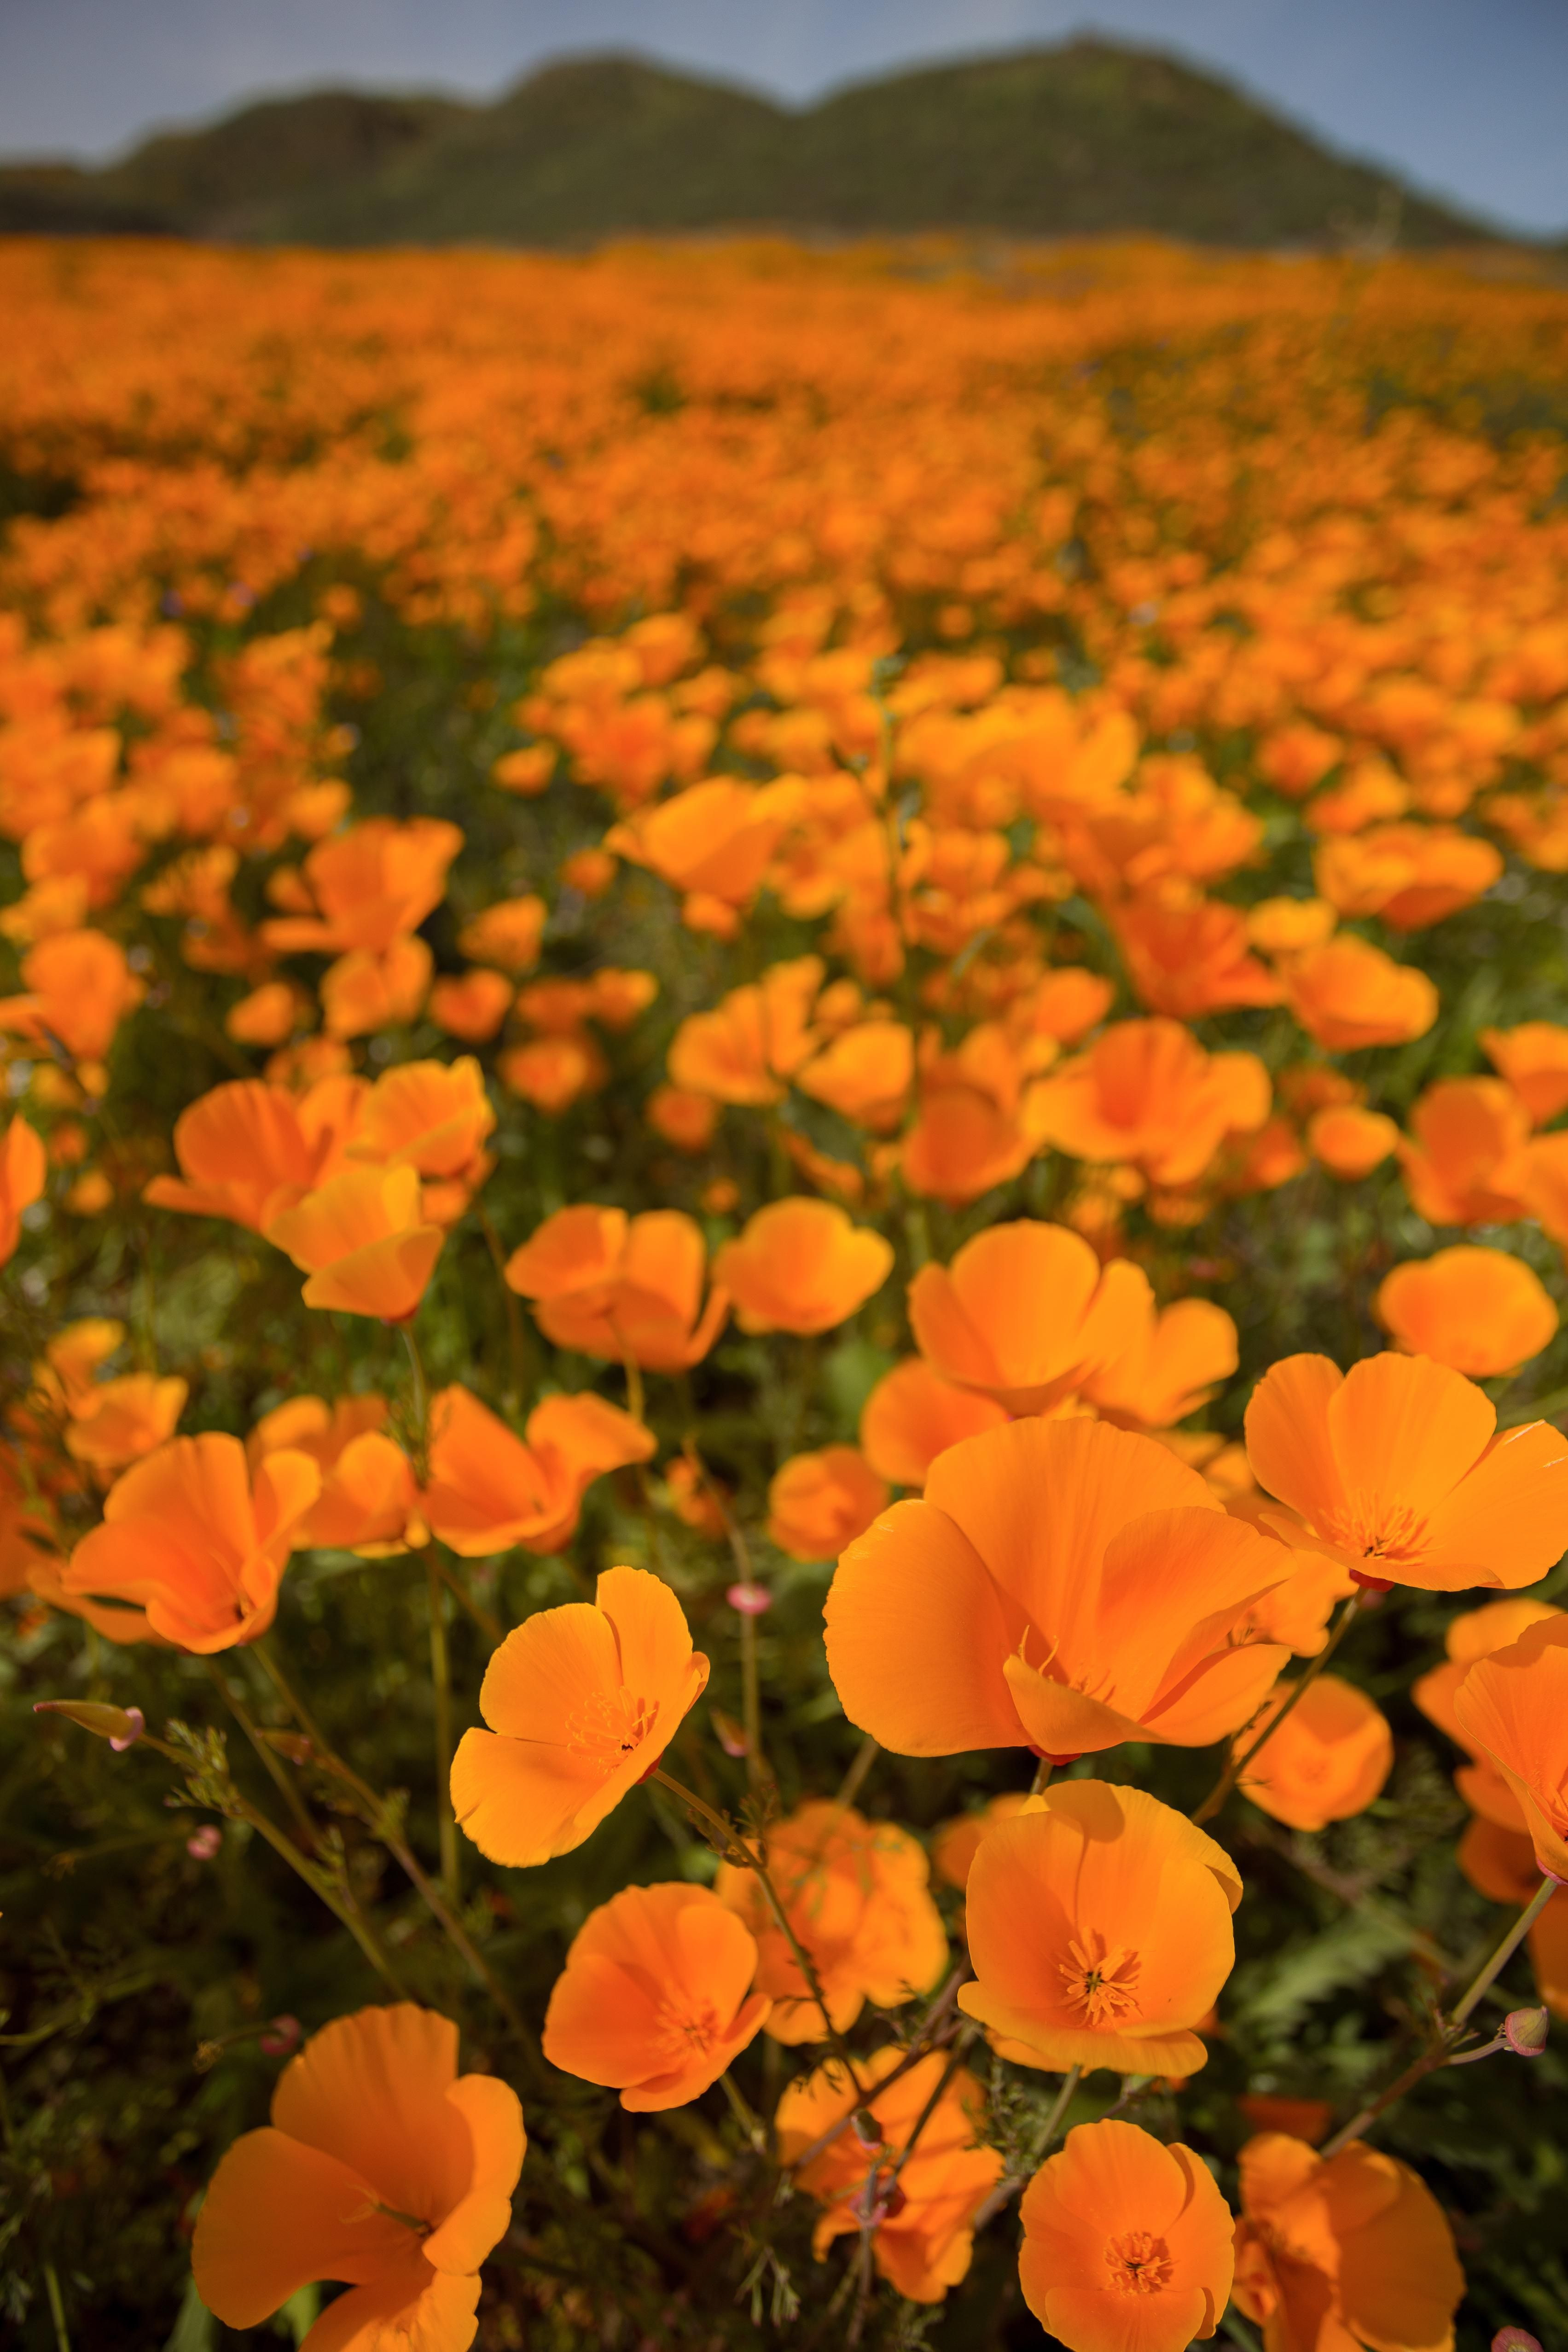 California Poppies are Blooming due to the rain Lake Elsinore CA [3406x5109]